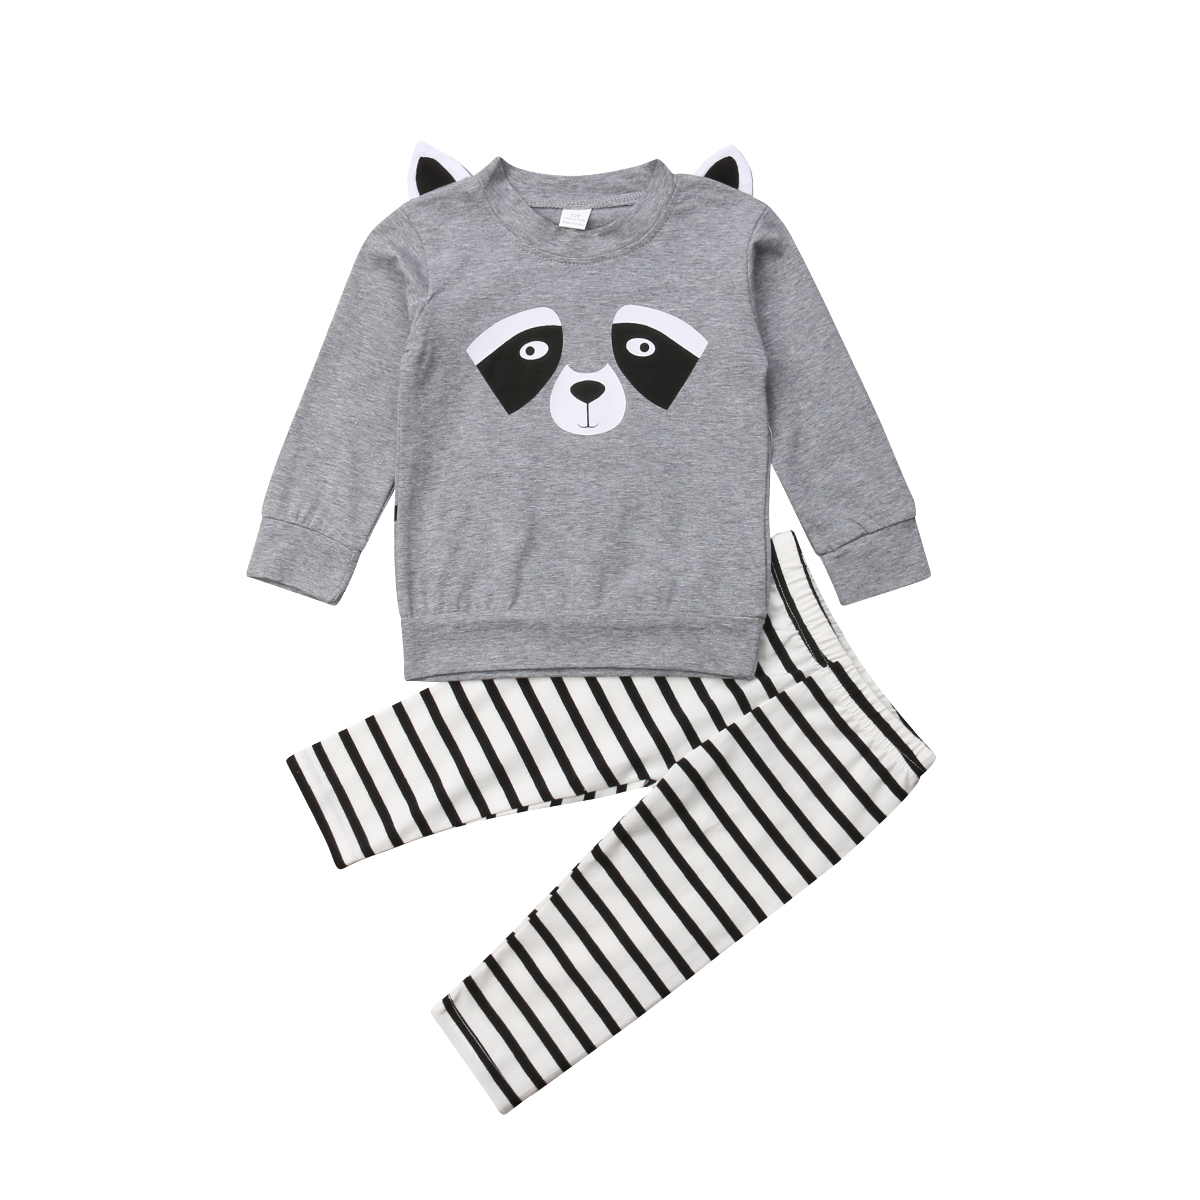 Boy T-shirt Pants Set Cute Animals Long Sleeve Toddler Autumn Clothes Tracksuit 2PCS Kids Baby Girls Outfits Clothing 1-5T spring autumn fashion children clothes full sleeve t shirt and pants 2pcs handsome gentleman suit boy clothing set kid tracksuit